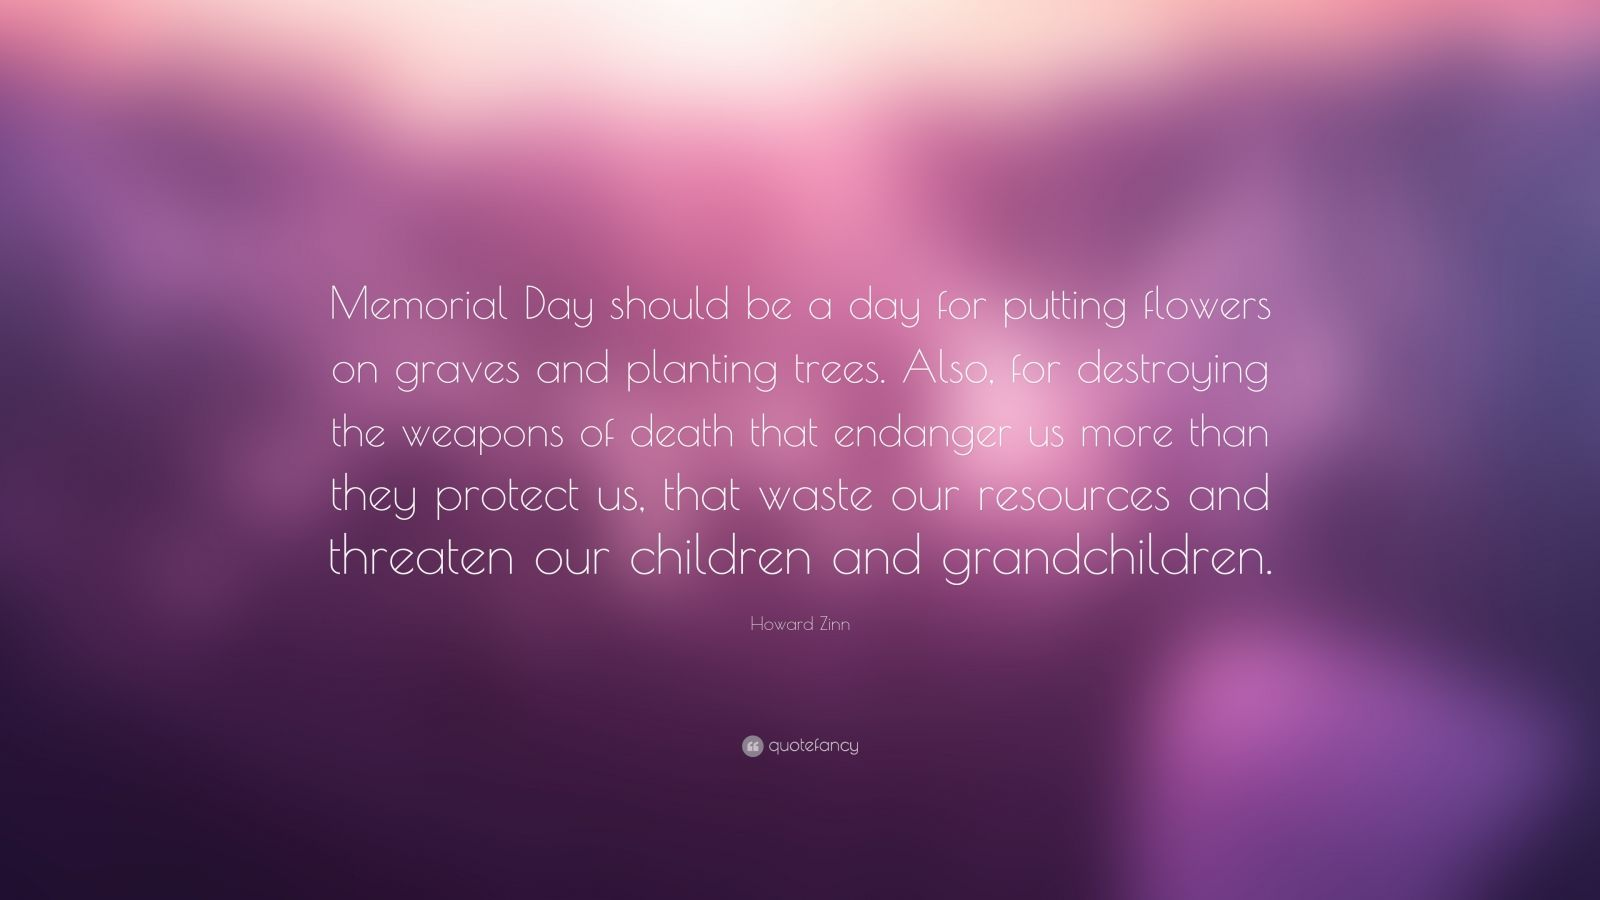 """Howard Zinn Quote: """"Memorial Day should be a day for putting flowers on graves and planting trees. Also, for destroying the weapons of death that endanger us more than they protect us, that waste our resources and threaten our children and grandchildren."""""""